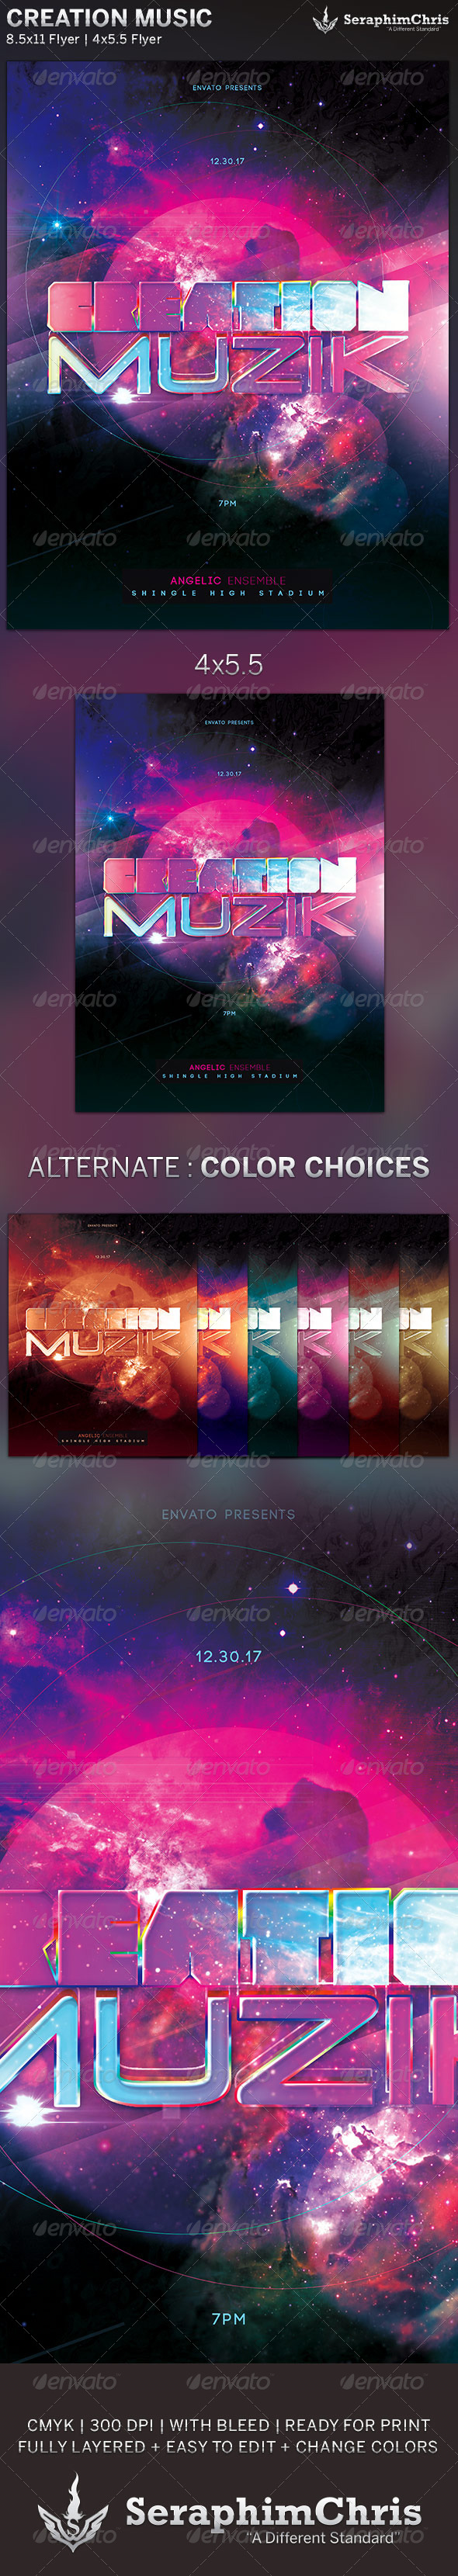 Creation Music: Event Flyer Template - Events Flyers